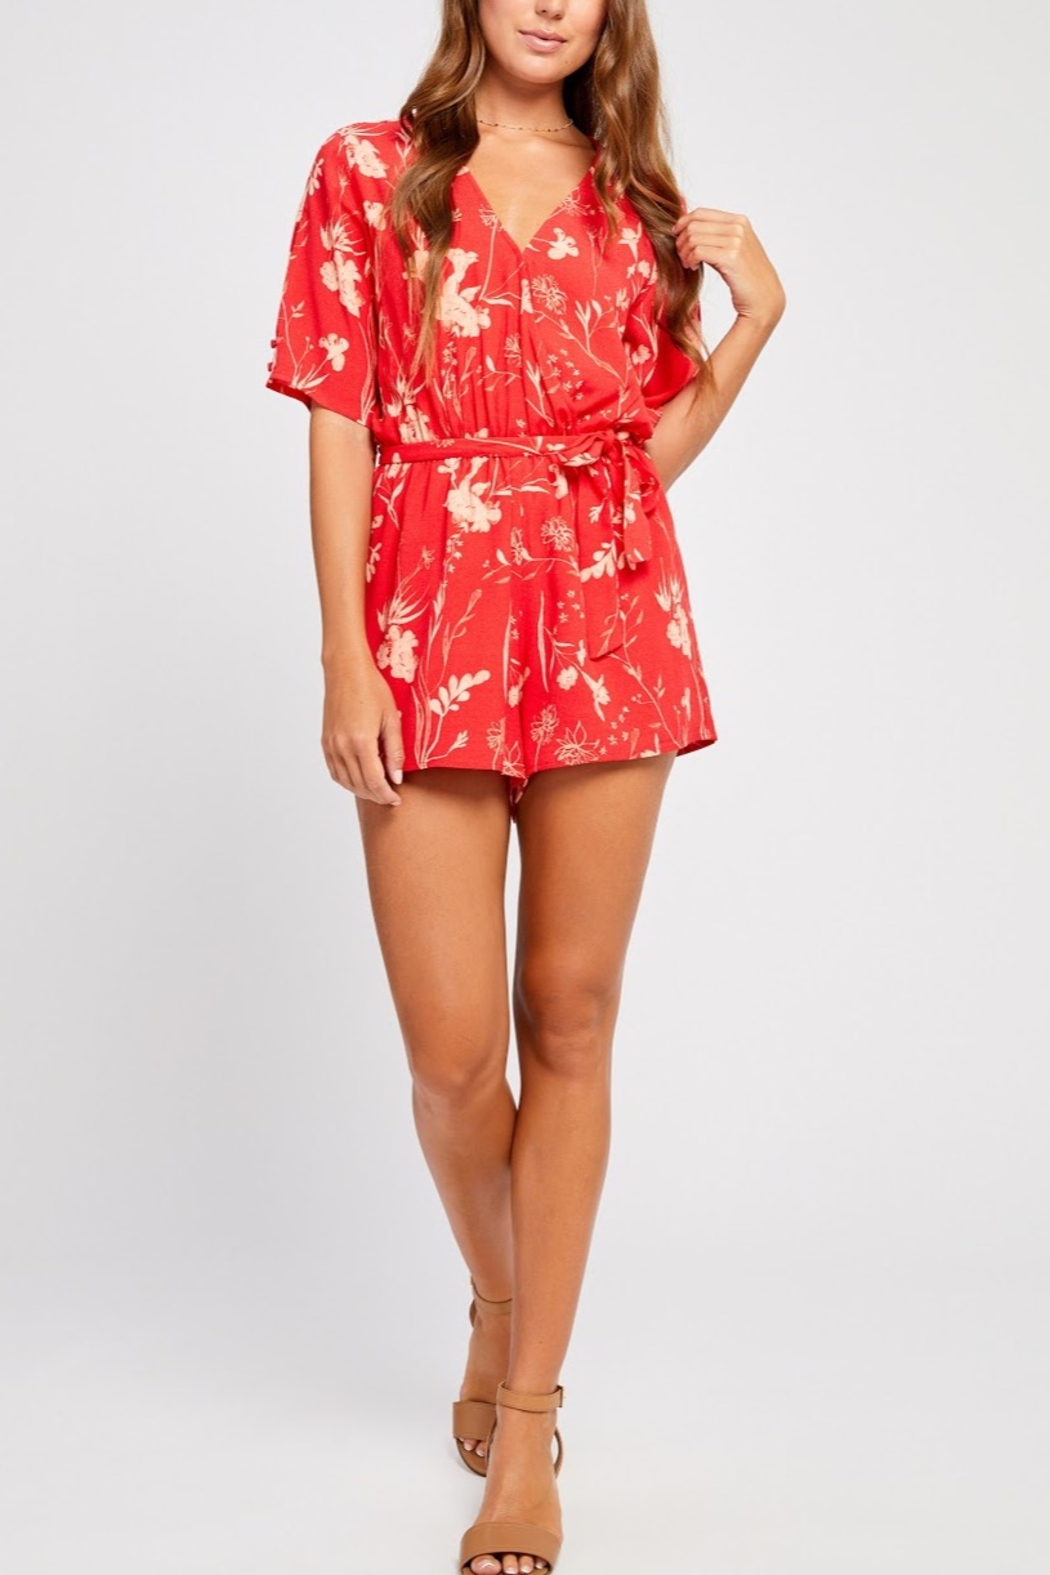 Gentle Fawn Marisol Romper - Front Cropped Image